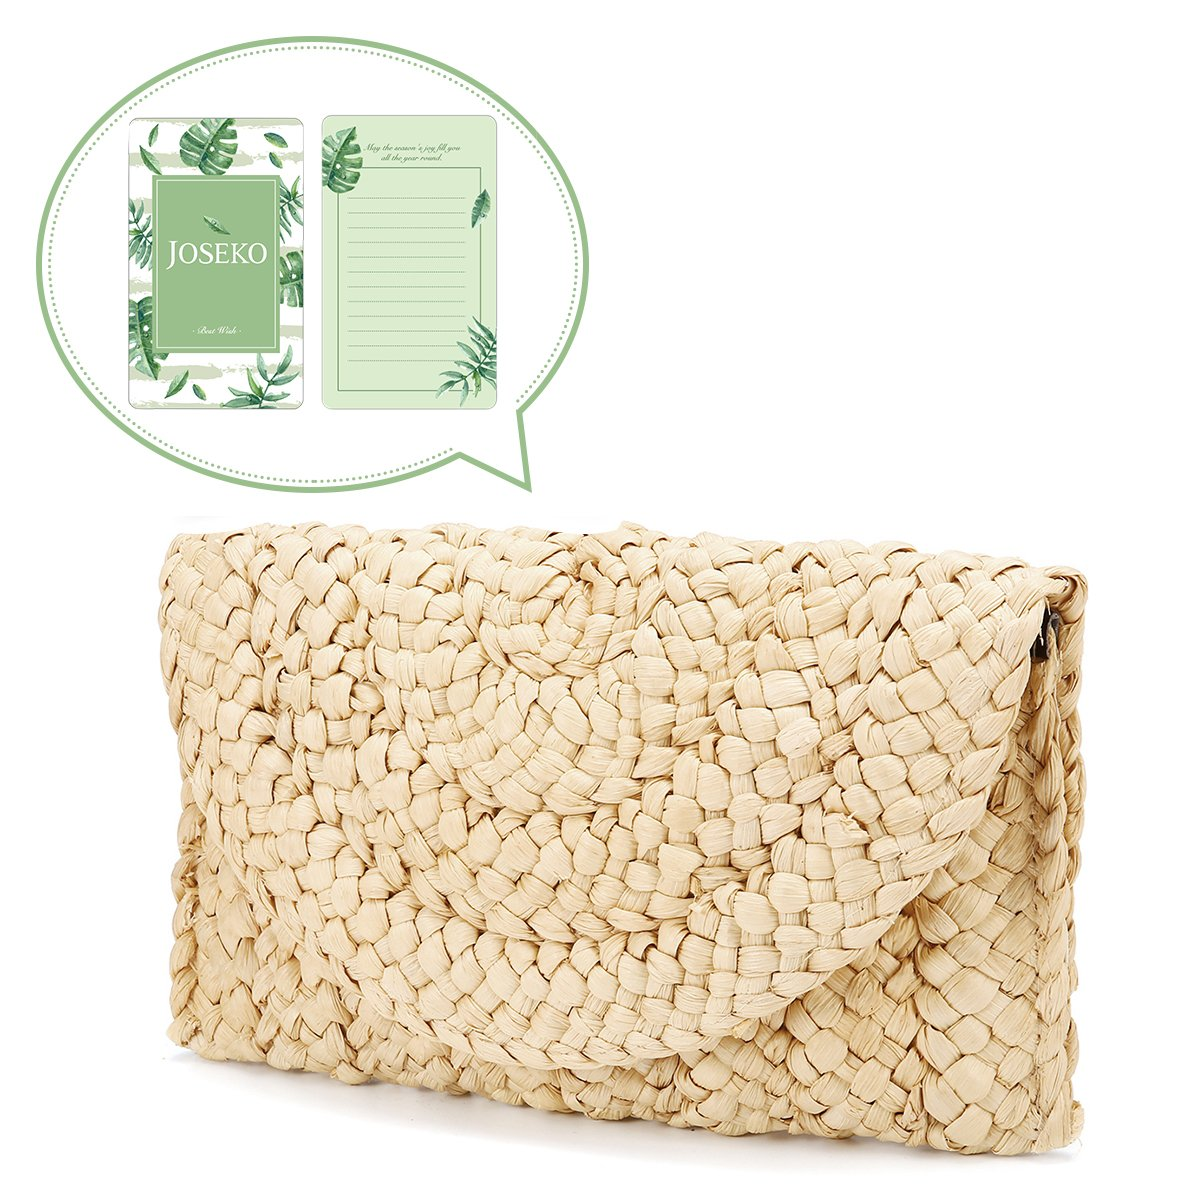 Straw Clutch Handbag, JOSEKO Women Straw Purse Envelope Bag Wallet Summer Beach Bag JOSEKOUSRnal1887